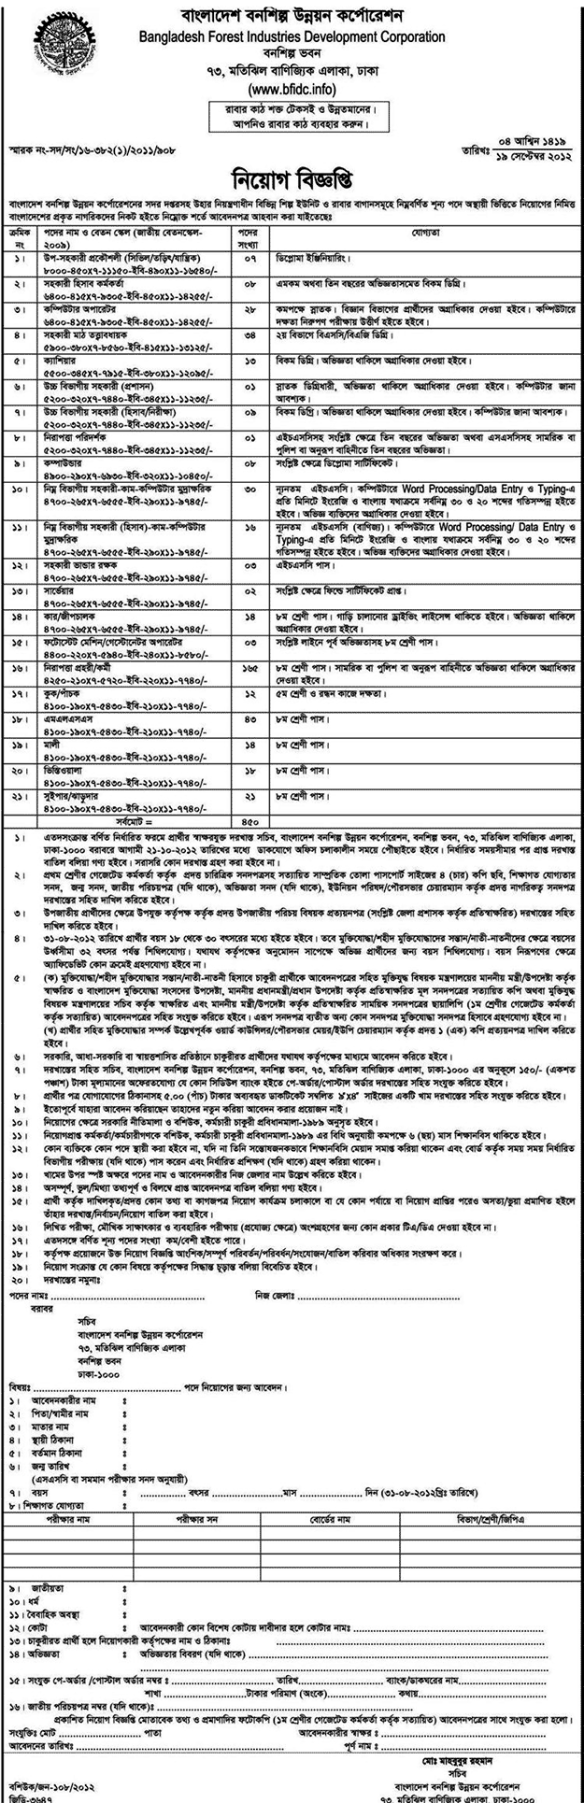 Bangladesh Forest Industries Dev. Corporation (BFIDC) job